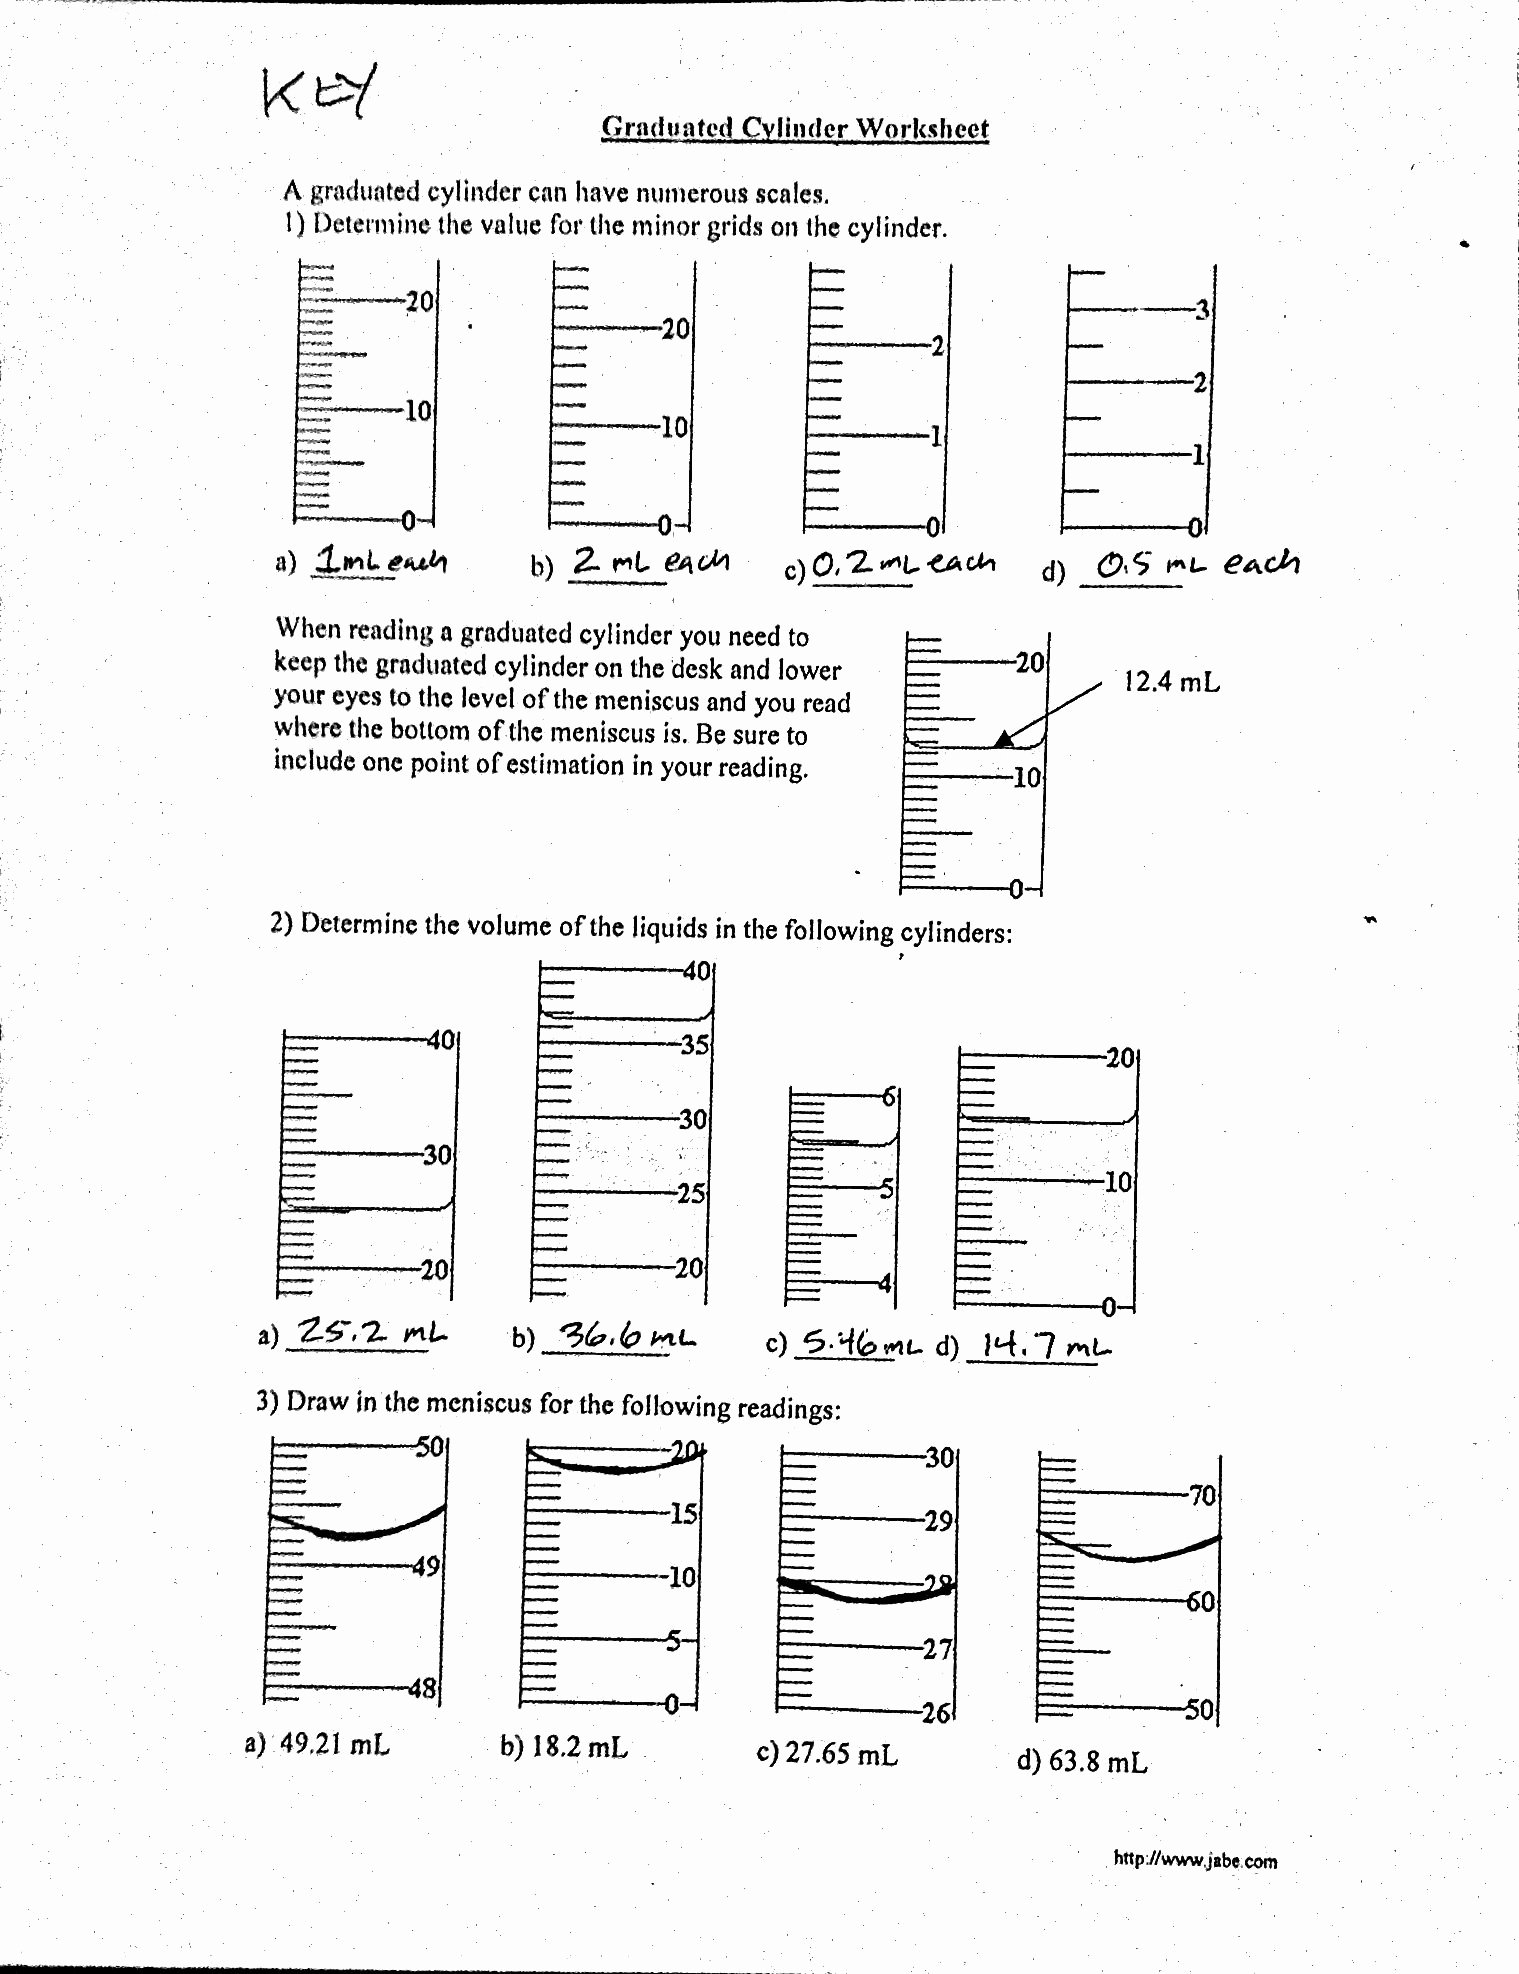 Reading Graduated Cylinders Worksheet Unique Volume Worksheet Graduated Cylinder